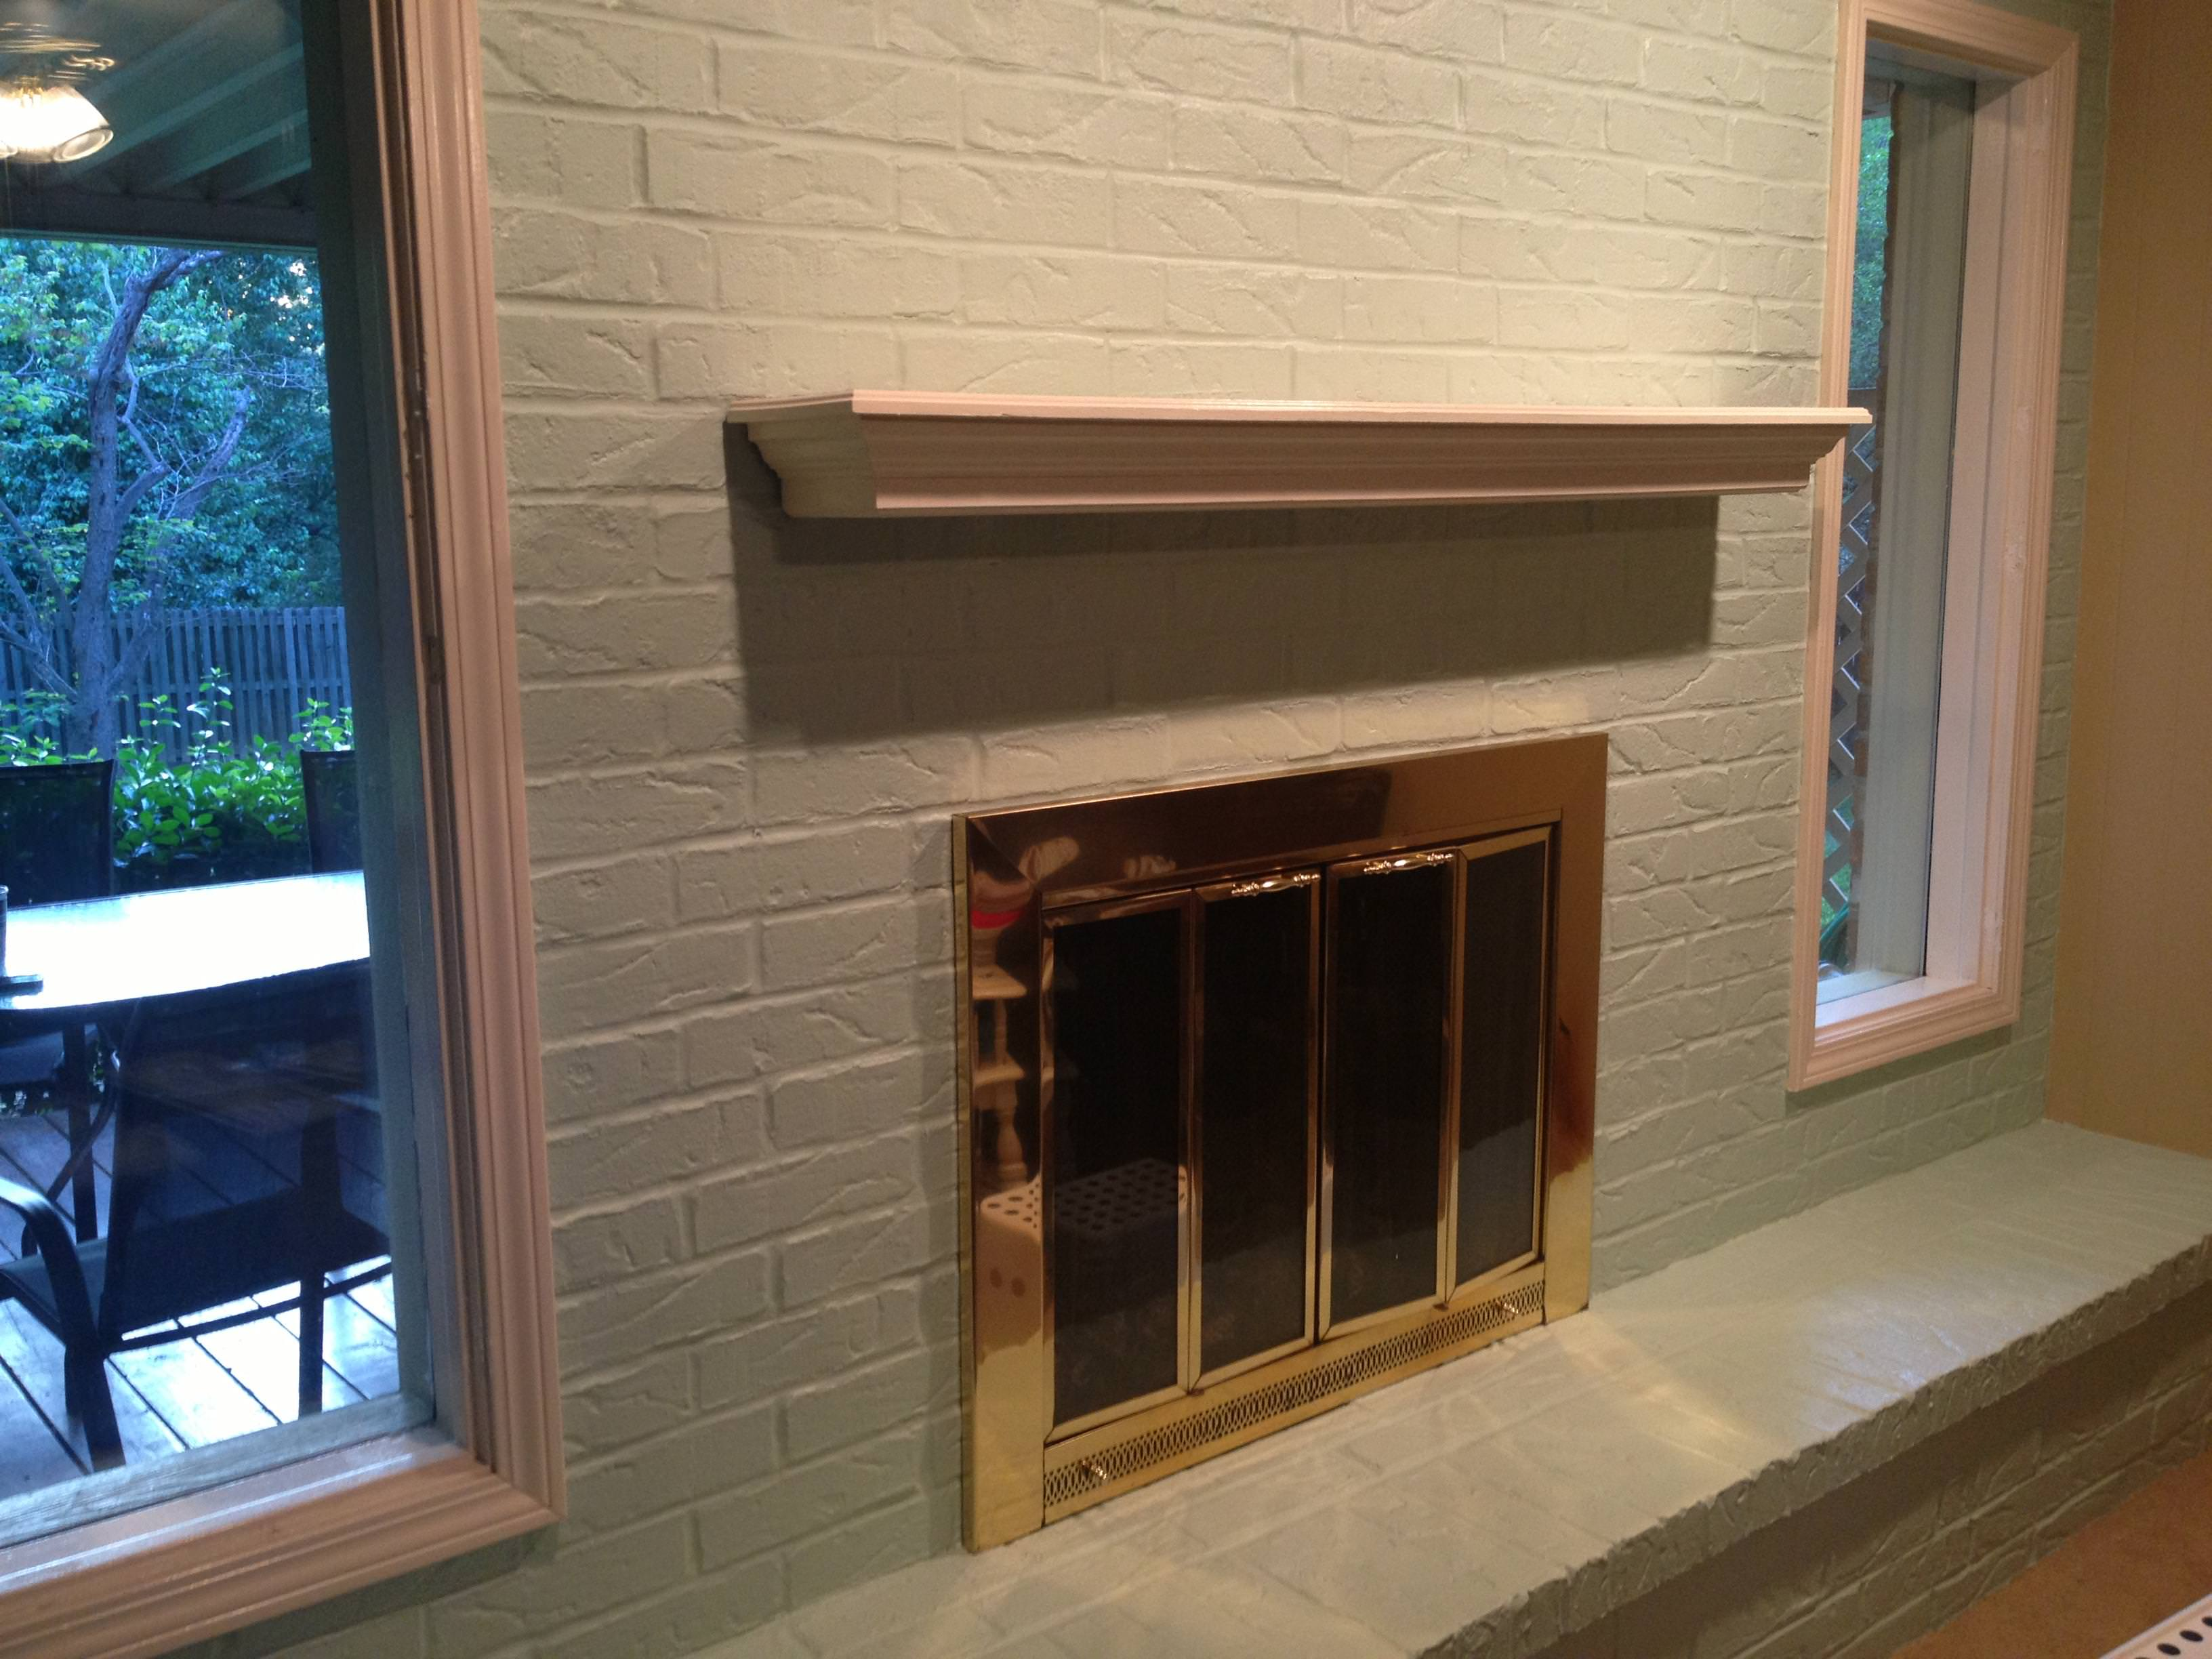 arch kits belt over diy tool mccmatricschool mantle fireplace l with nathan her mantel shelf d com